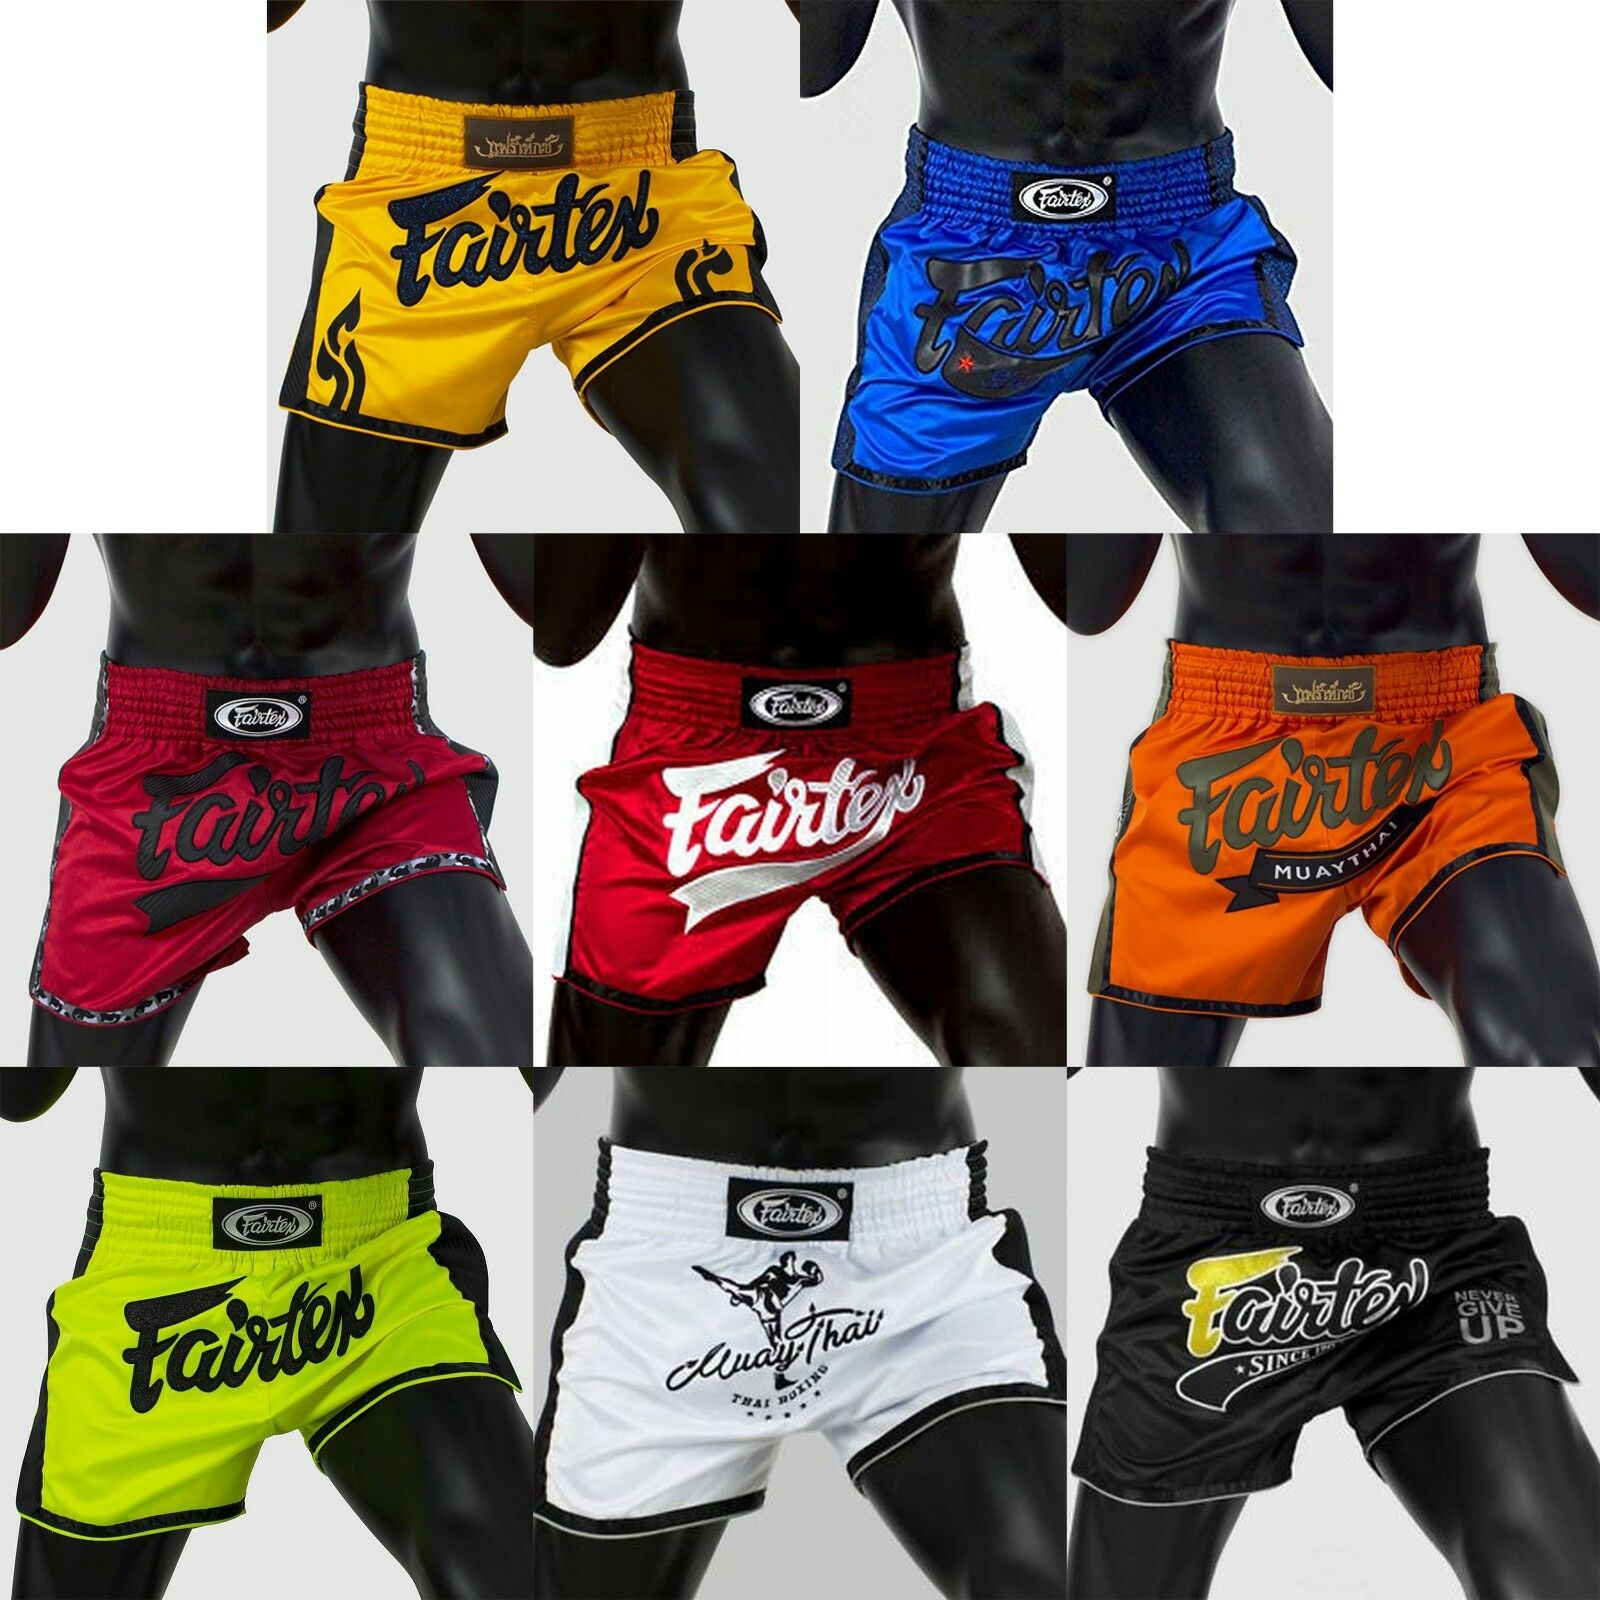 FAIRTEX BS170X Series SHORTS SLIM CUT Martial Arts Sport COLORS MUAY THAI BOXING